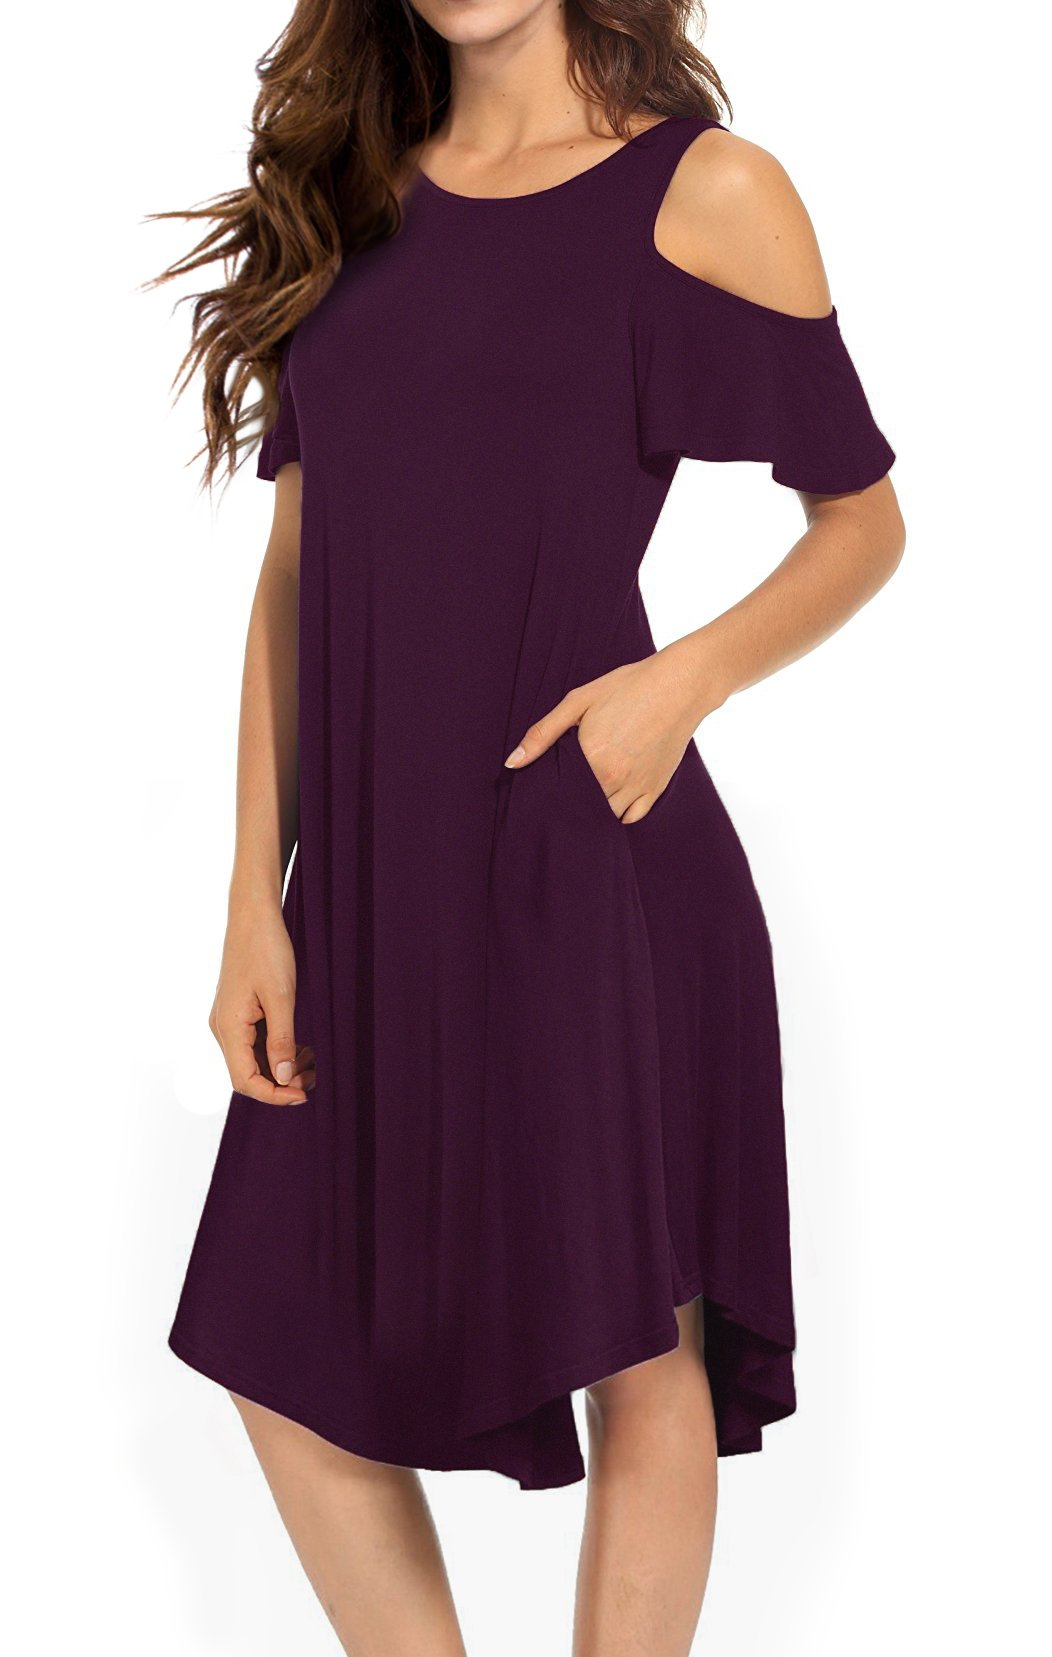 VERABENDI Women's Casual Cold Shoulder Midi Dress Short Sleeve Swing Dress with Pockets Mulberry Large